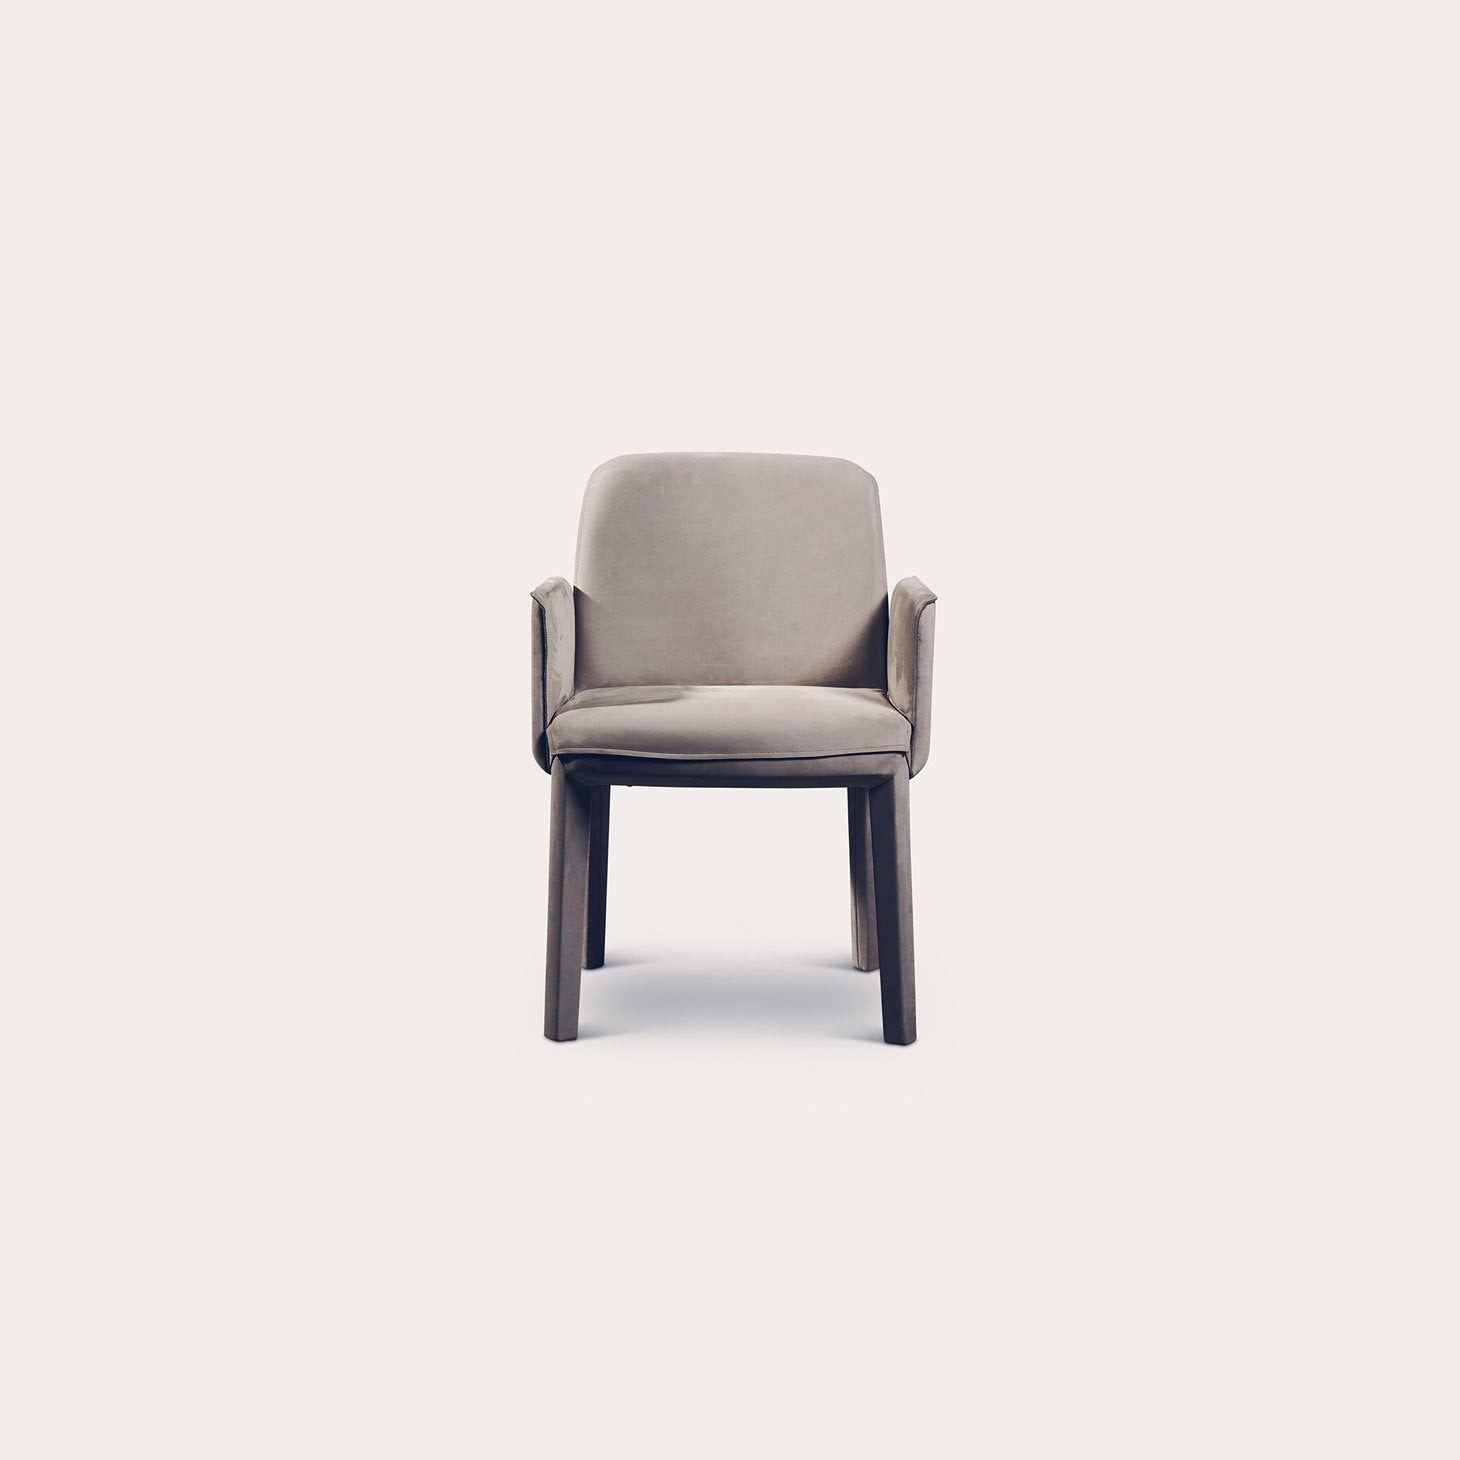 Minne Seating Piet Boon Designer Furniture Sku: 784-120-10012